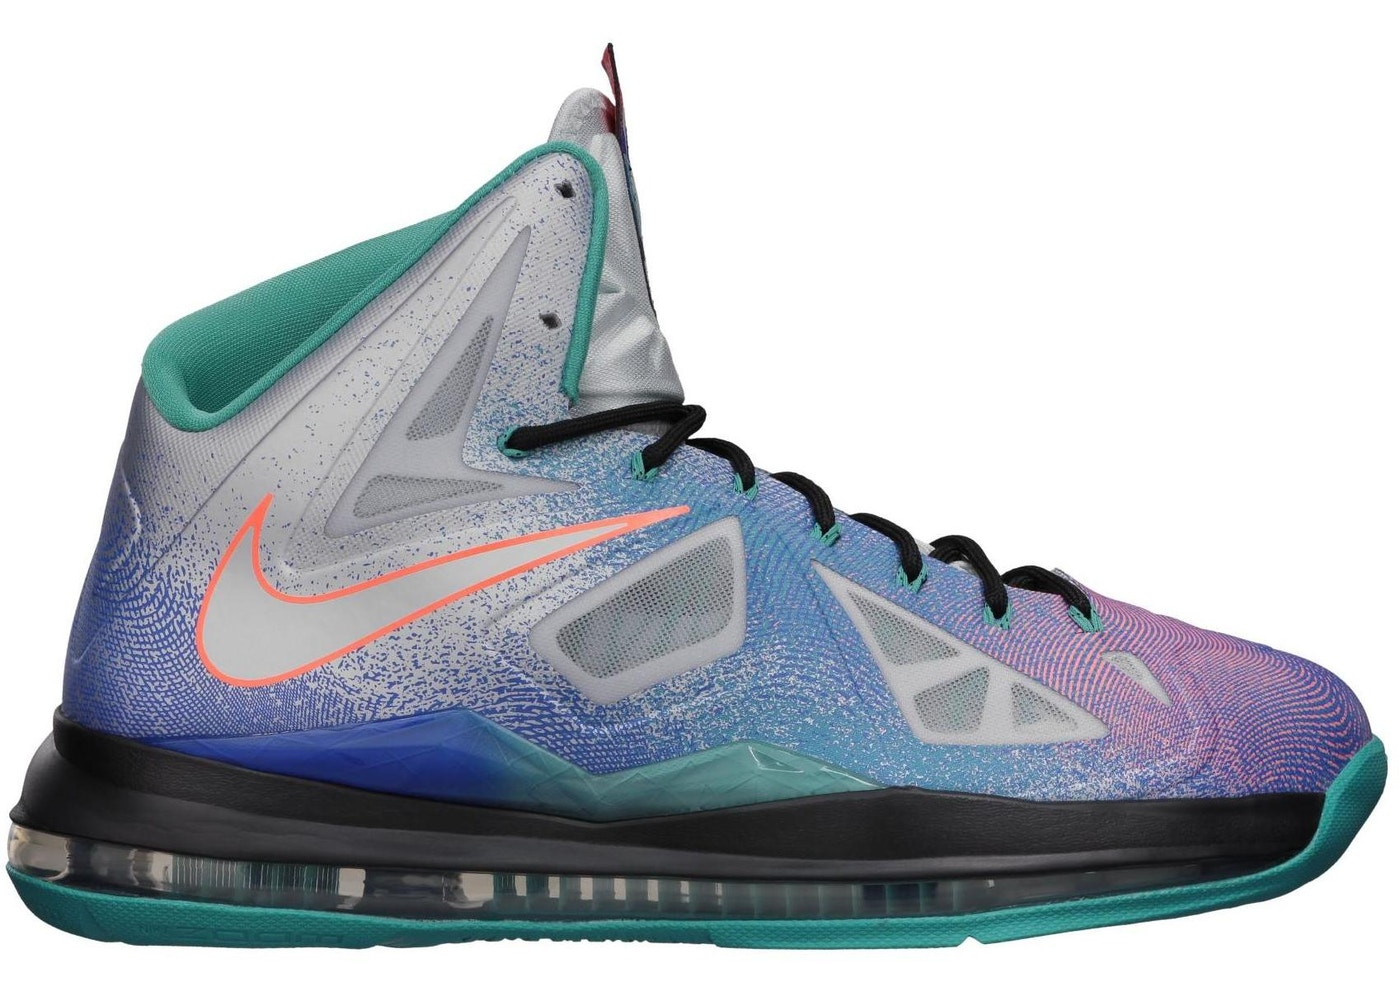 huge selection of 5883f a35fd LeBron X Re-Entry - 541100-008